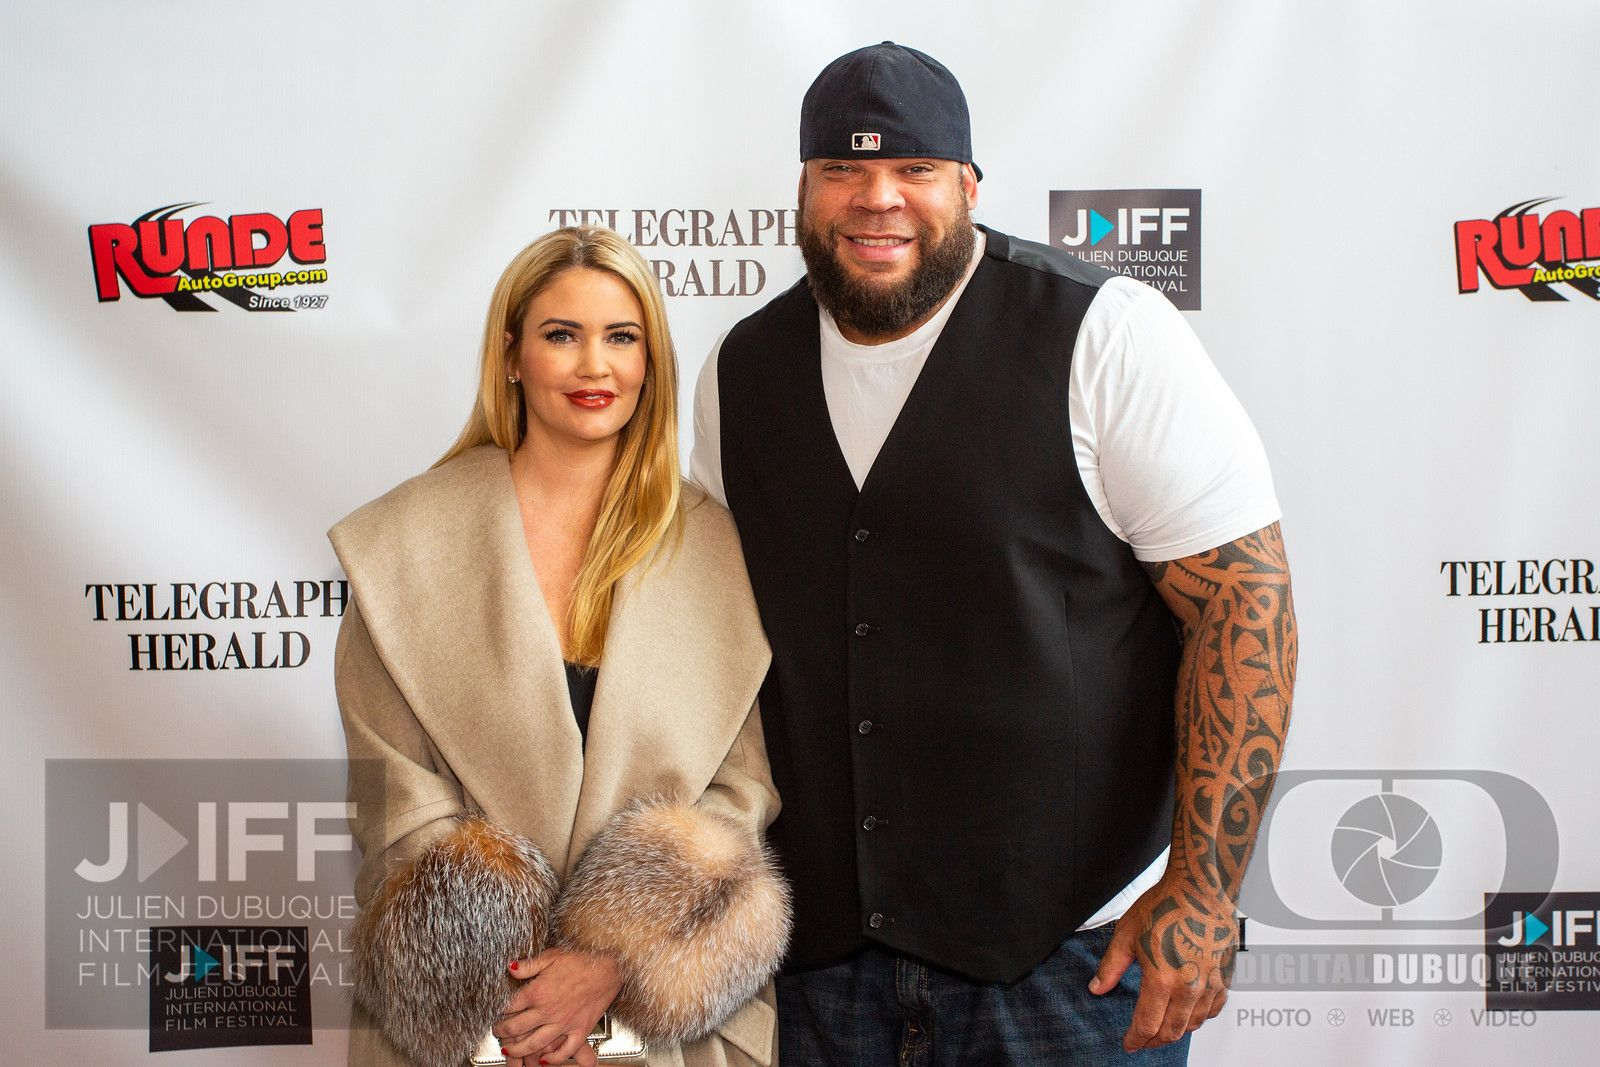 Owner #ingridrinck with fiancé #tyrus of the